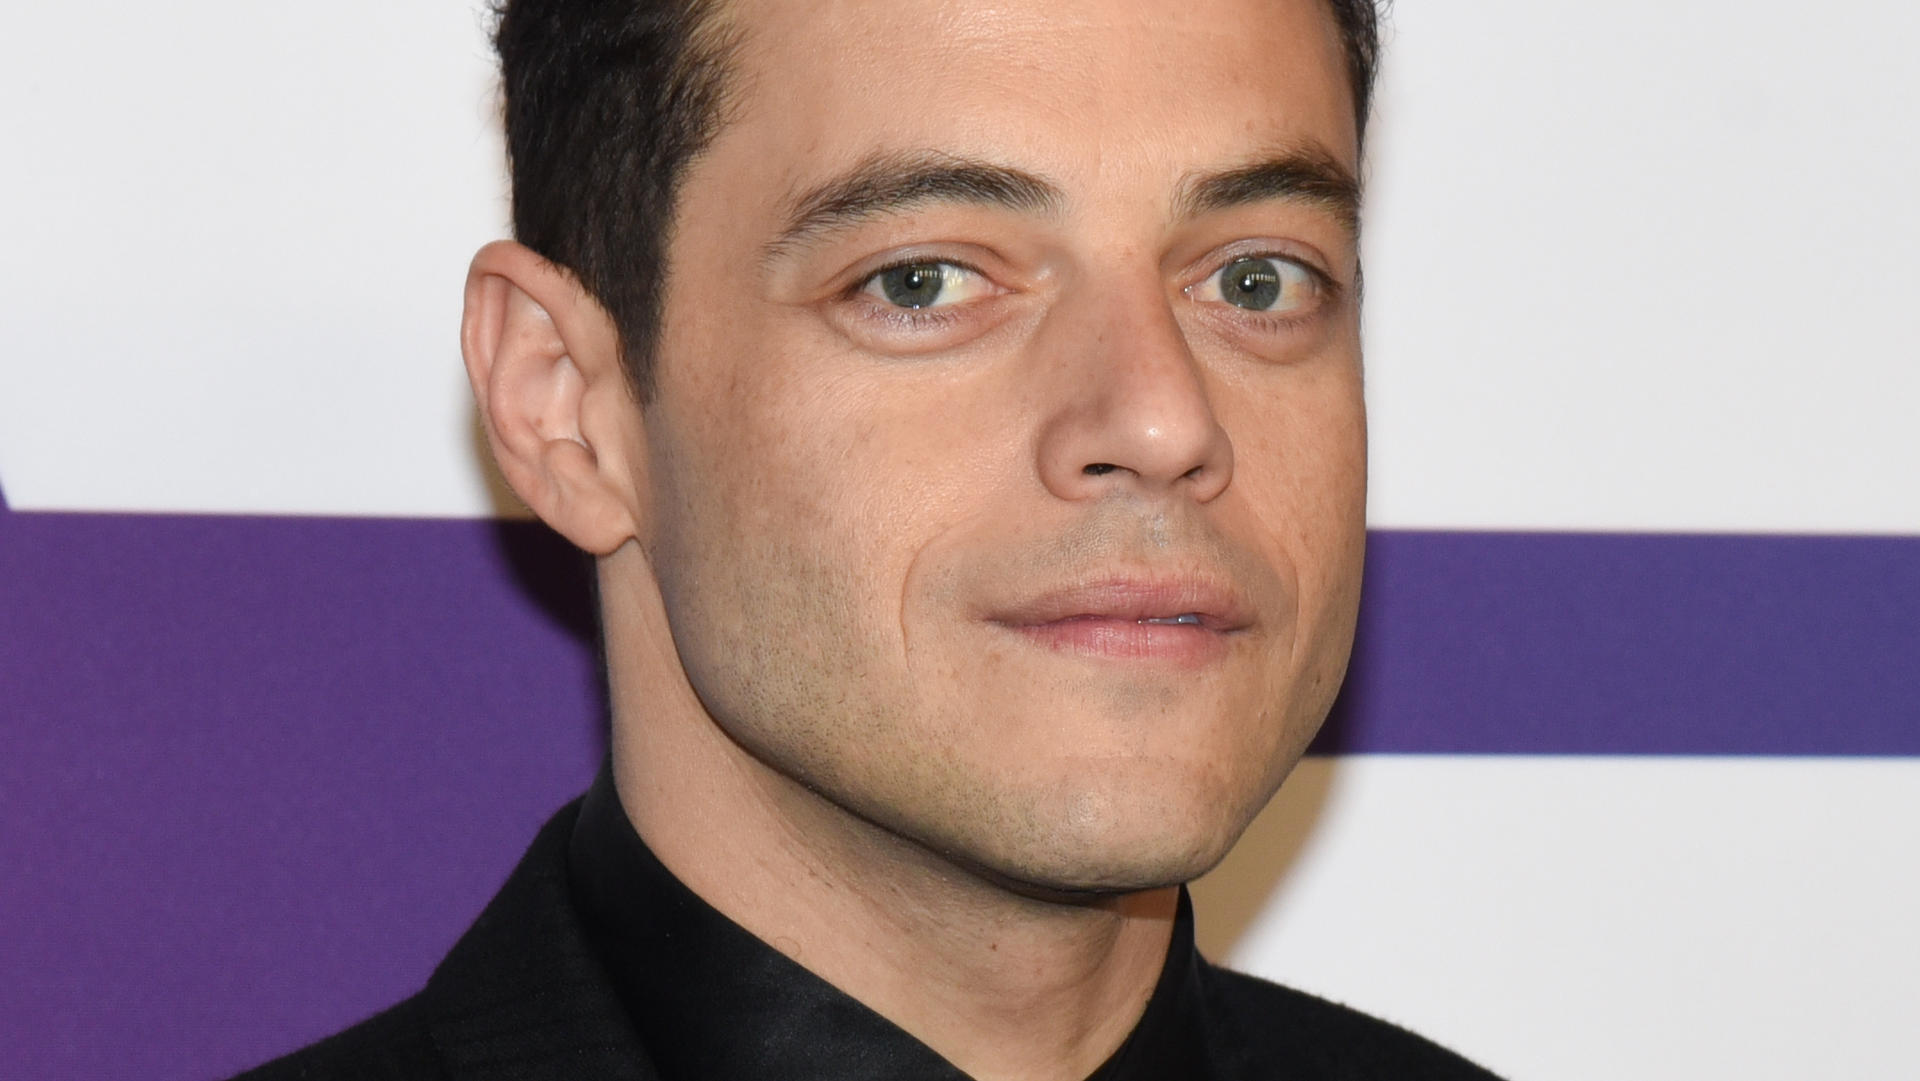 Celebrities arrivals at the 91st Oscars Nominees Luncheon at The Beverly Hilton Hotel in Beverly Hills, California.Pictured: Rami MalekRef: SPL5060850 050219 NON-EXCLUSIVEPicture by: SplashNews.comSplash News and PicturesLos Angeles: 310-821-2666New